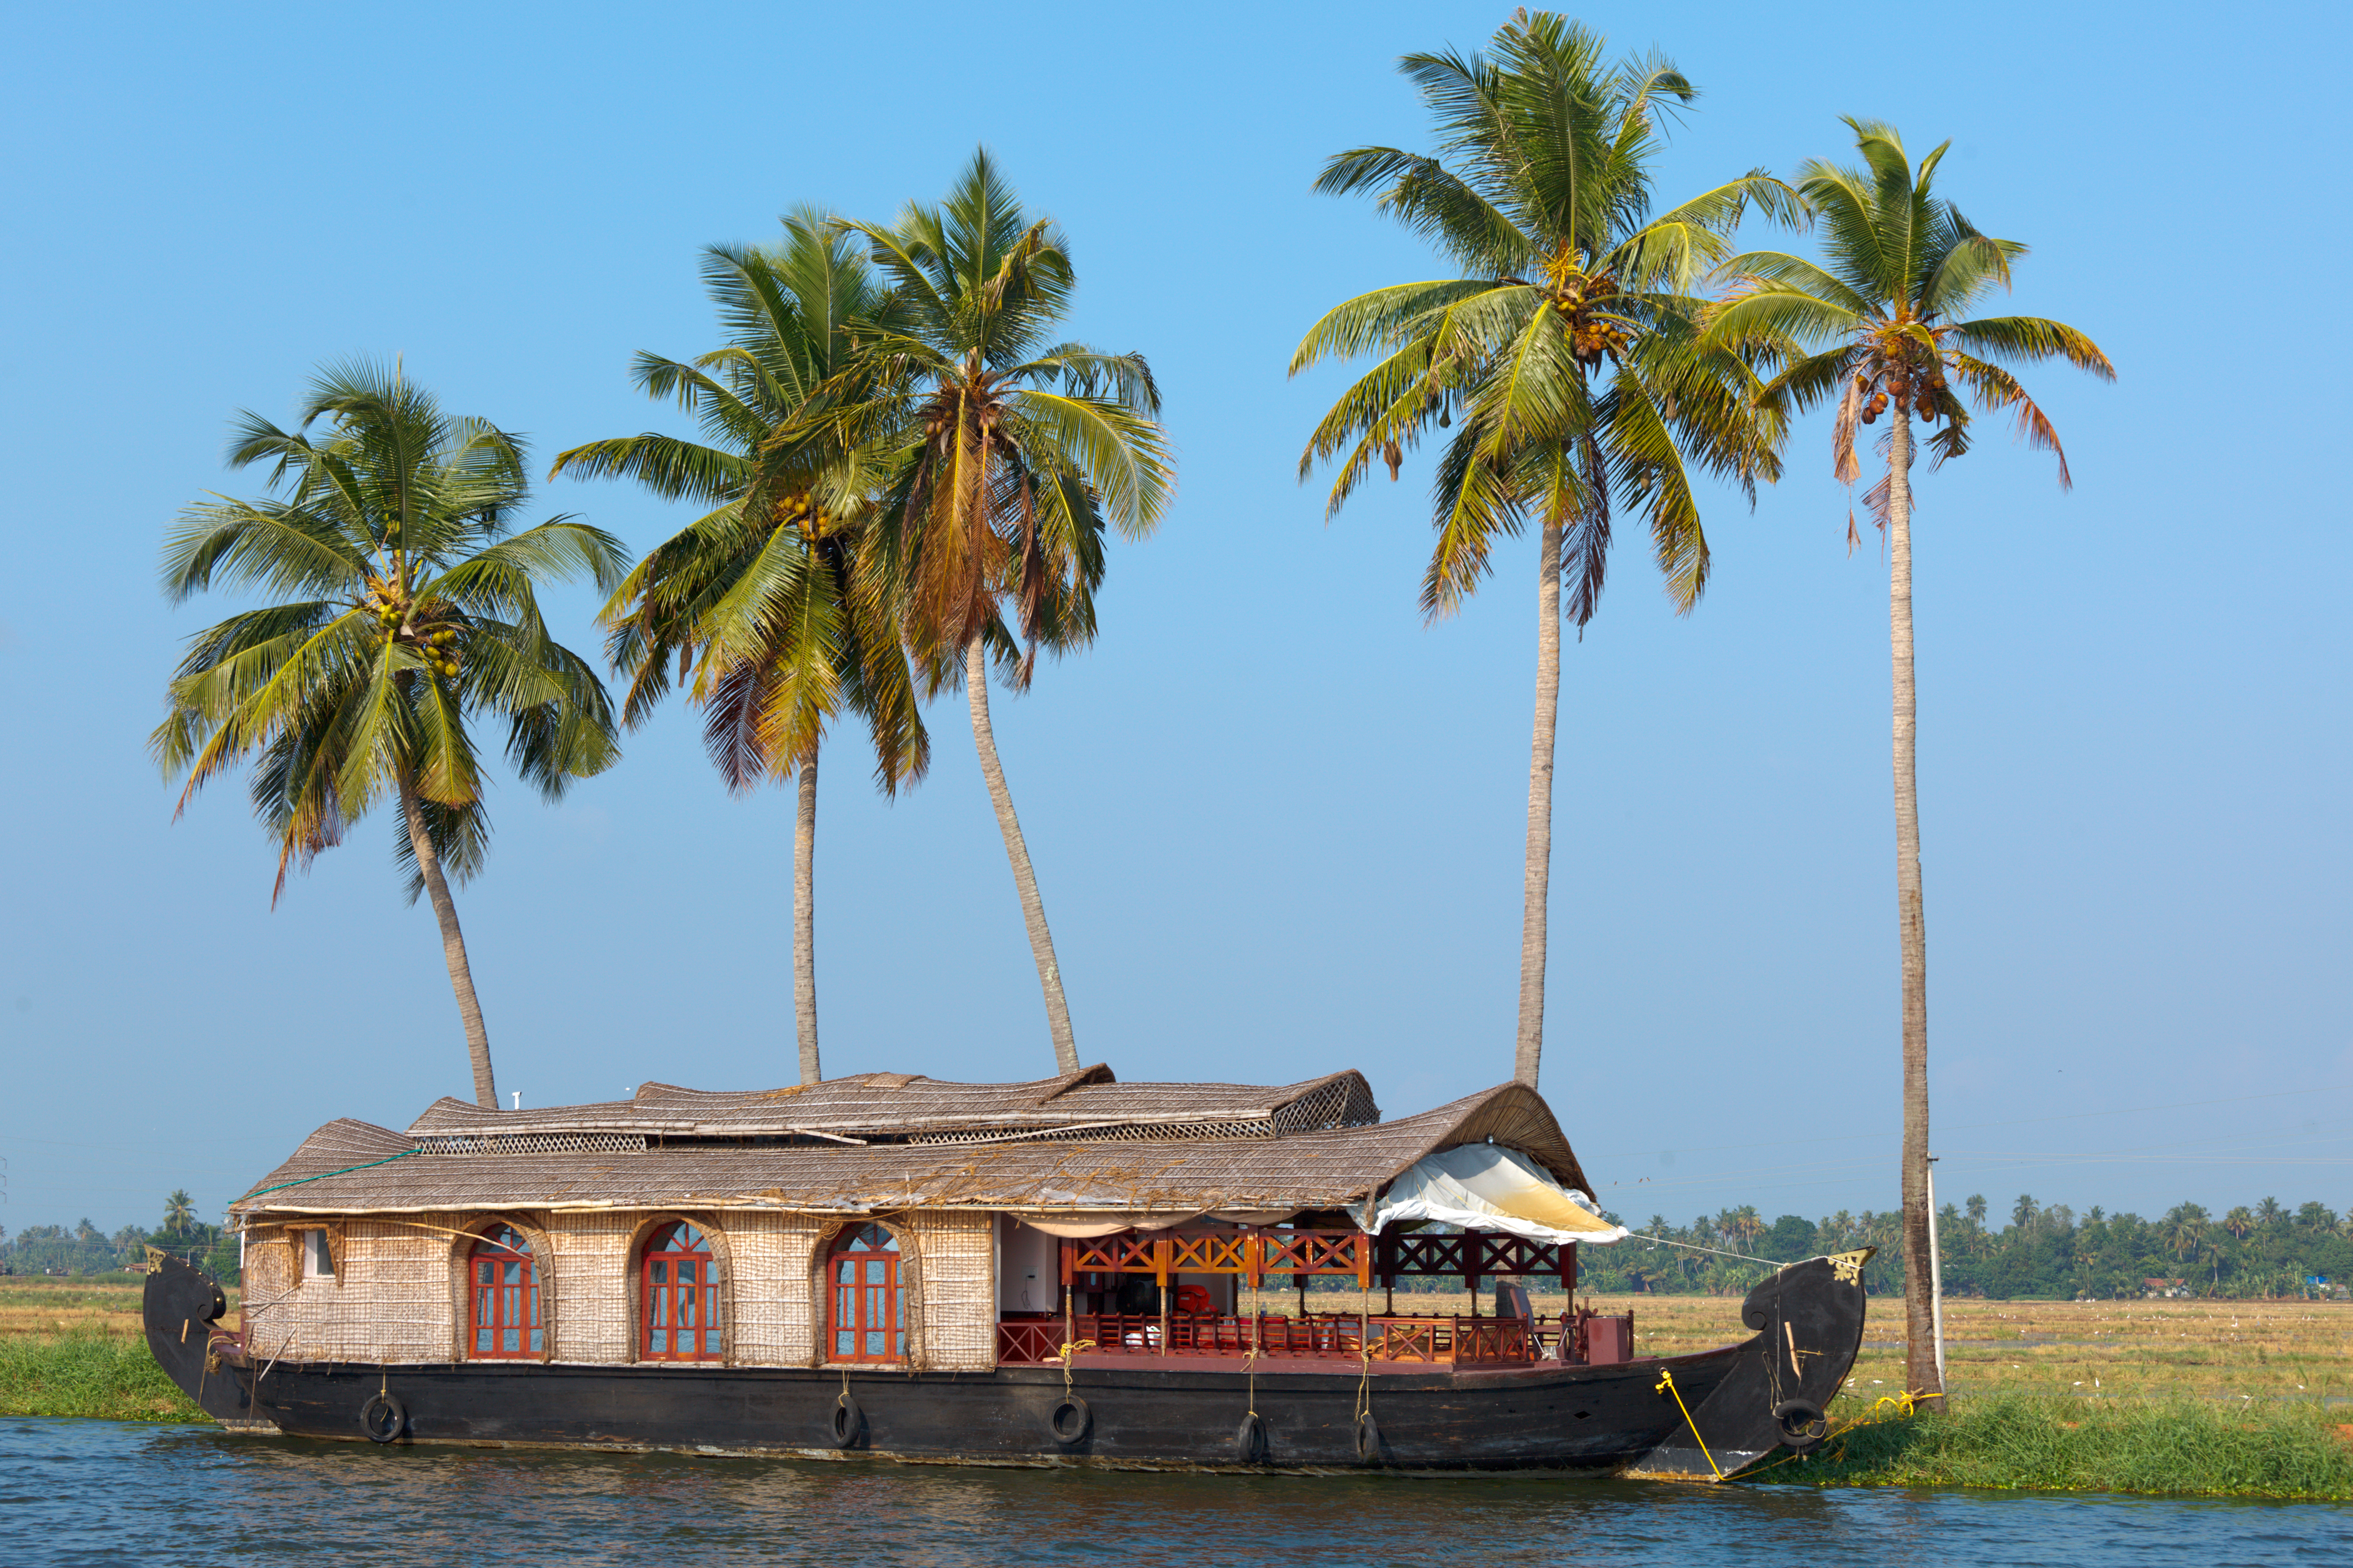 Tours In India Set For The Comeback With Exclusive Backwater House Boat Tour Packages For 2021 With Covid Guidelines From Kerala Govt.